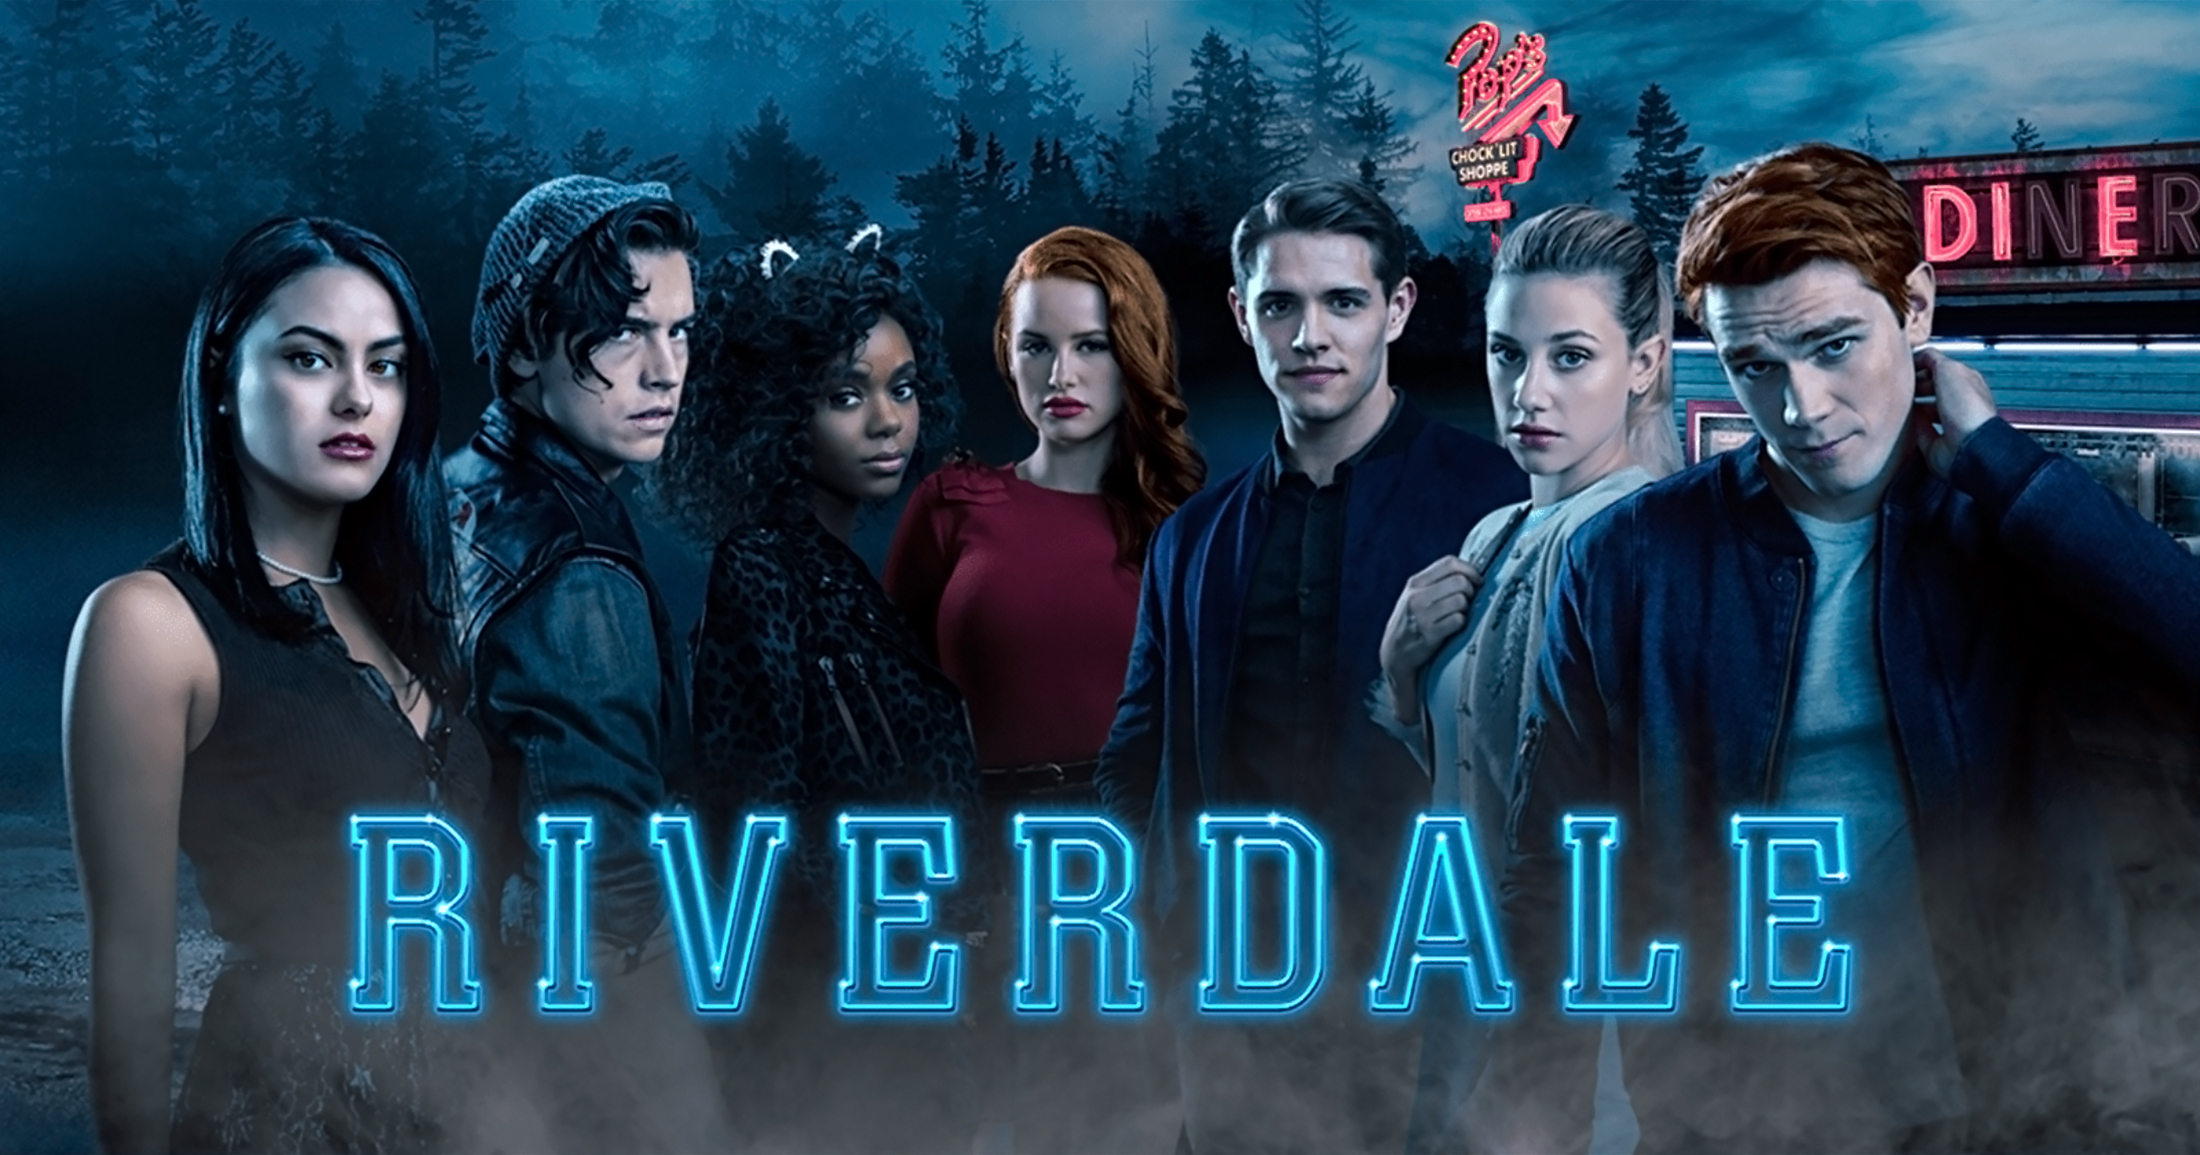 Wallpaper Riverdale characters Poster